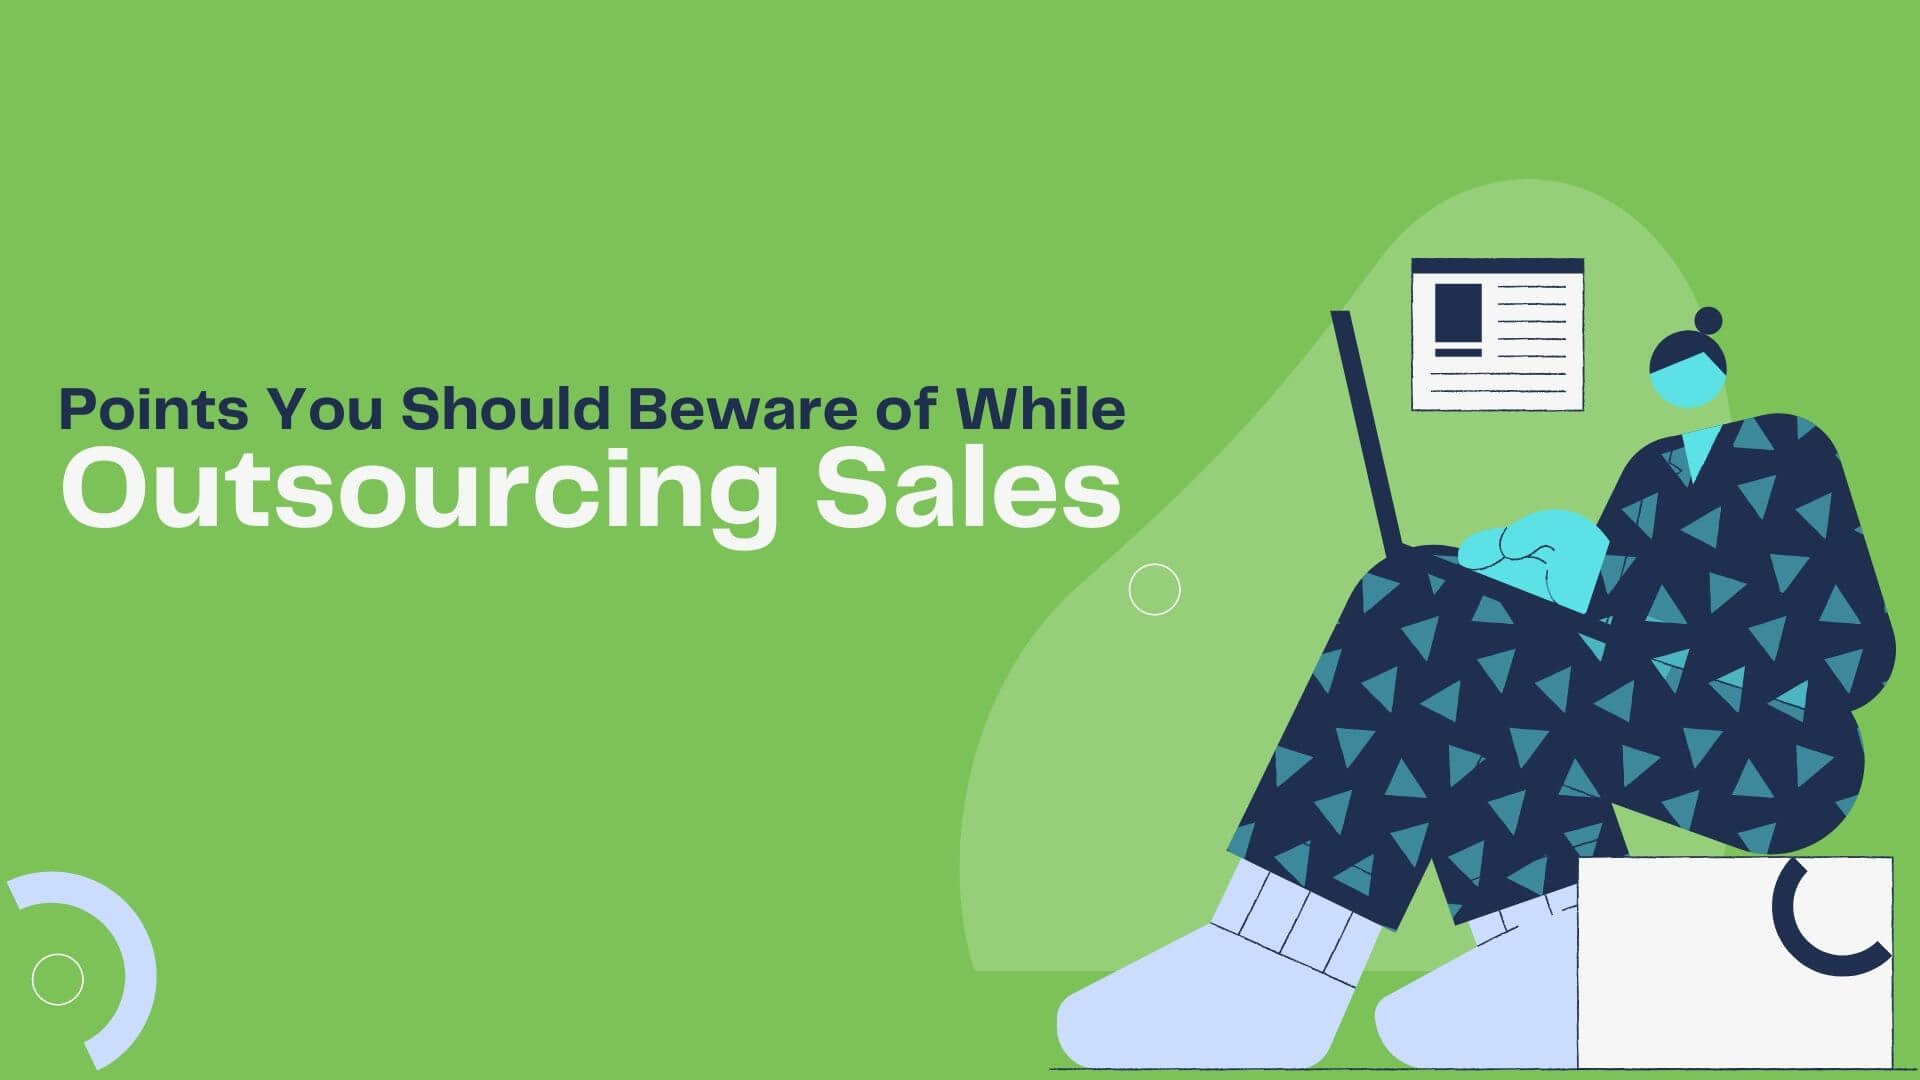 Points You Should Beware of While Outsourcing Sales